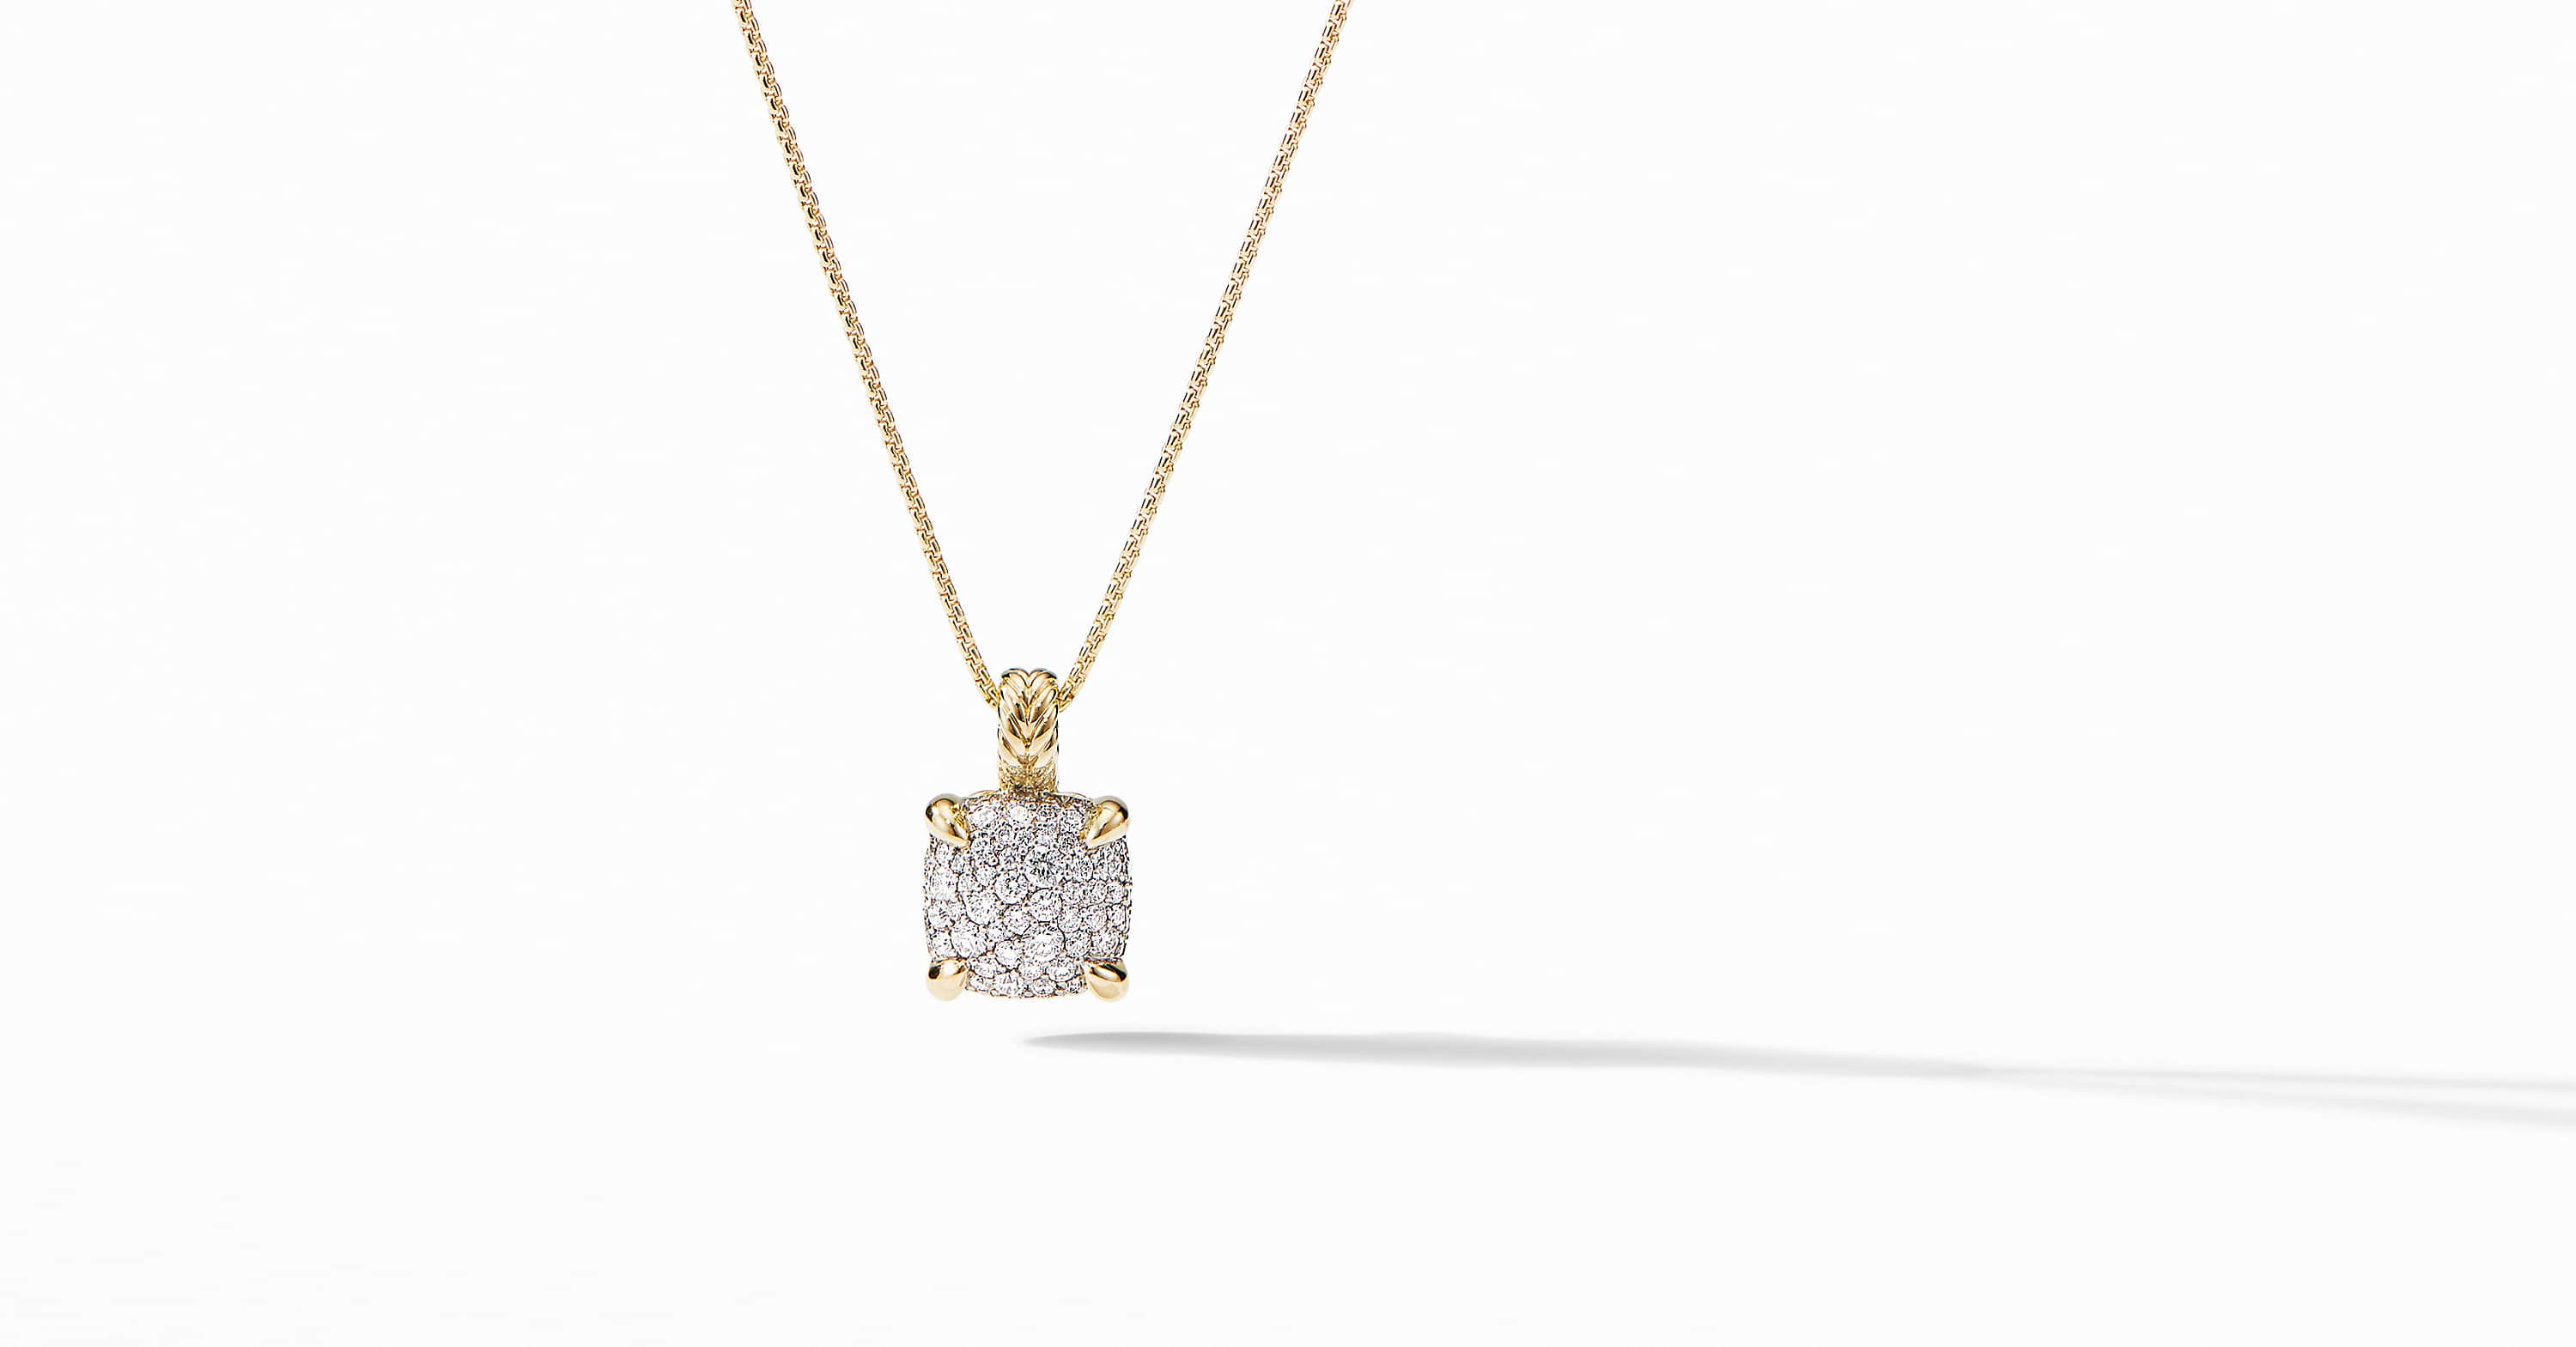 Chatelaine Pendant Necklace in 18K Yellow Gold with Full Pavé, 11mm